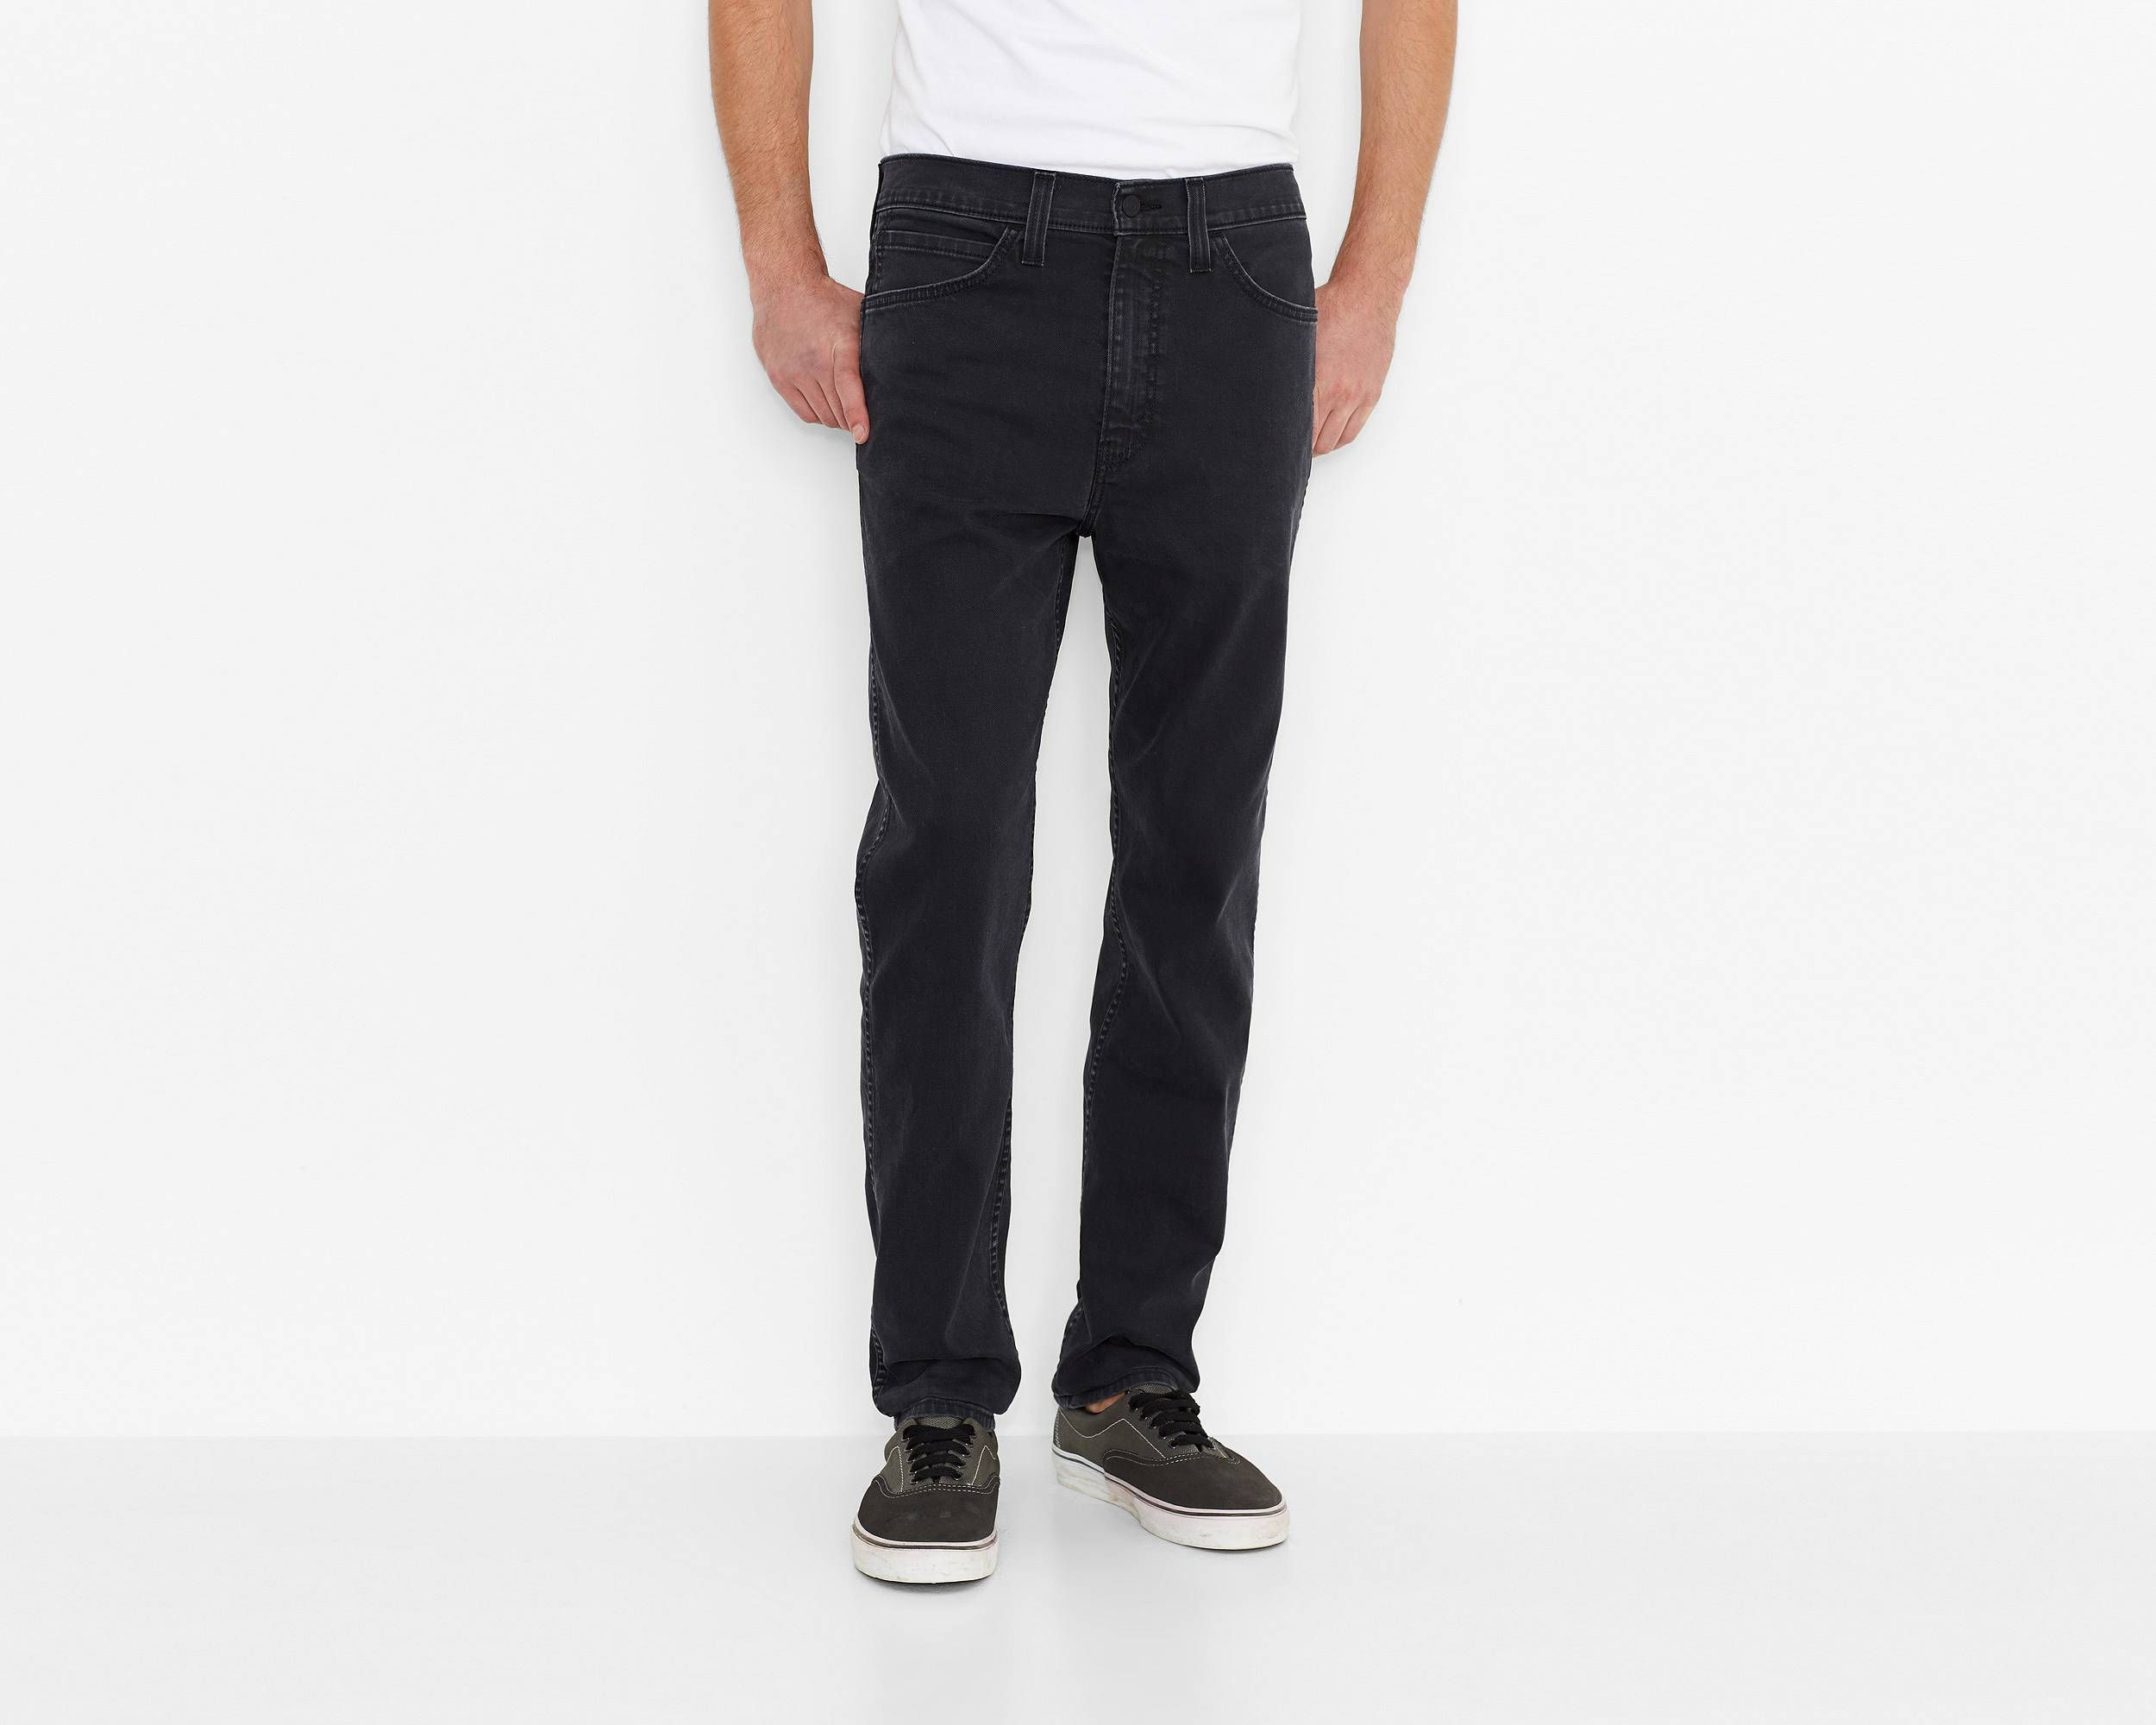 Black Levi's 522 Slim Taper